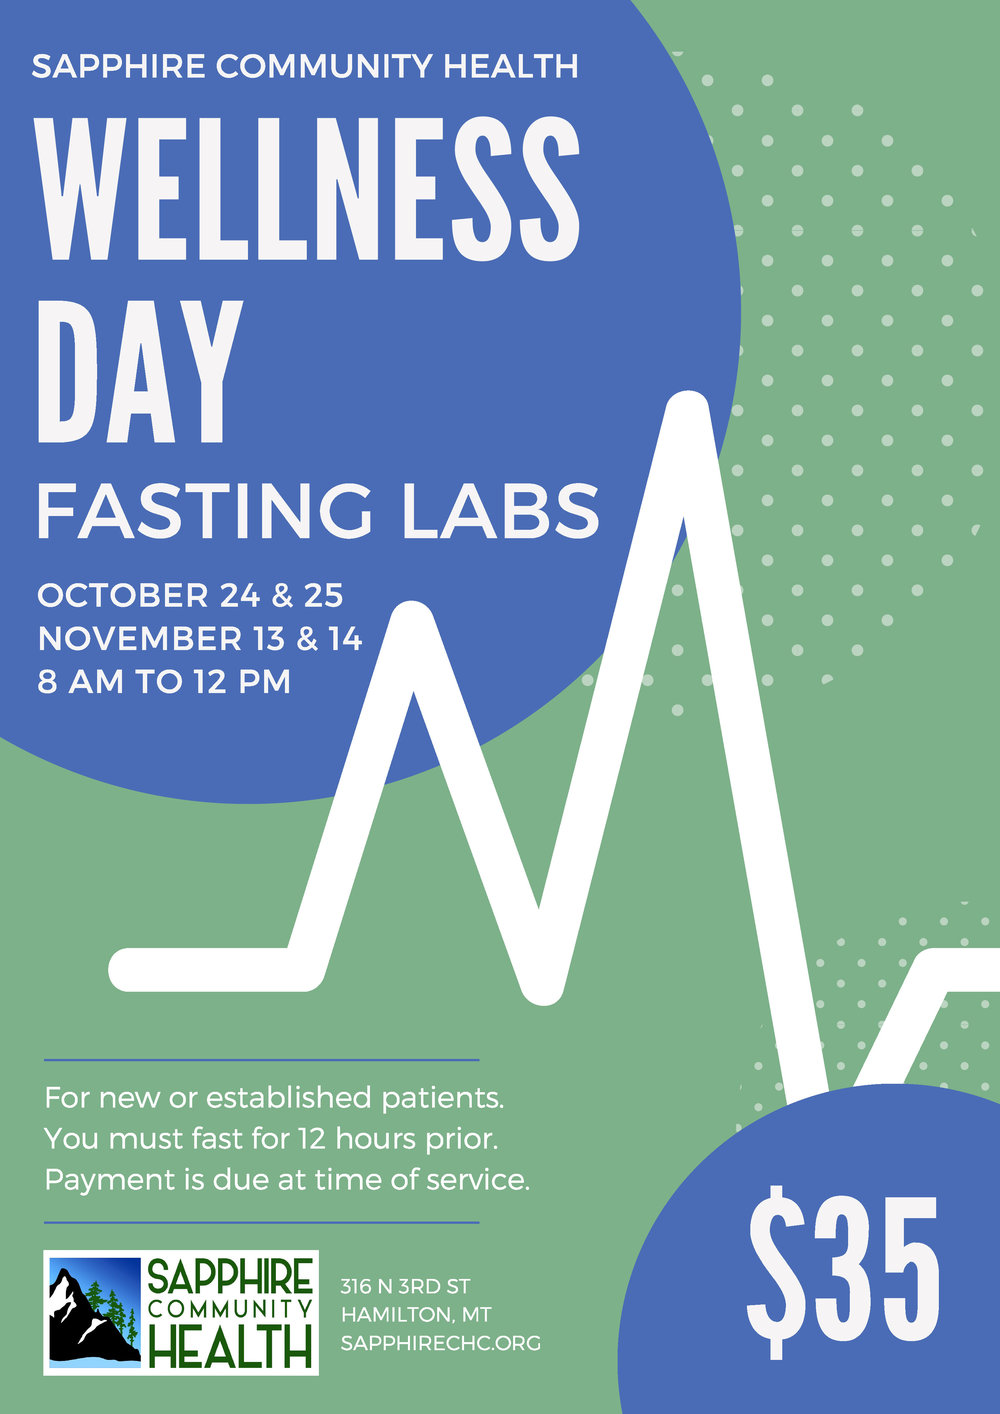 Sapphire Community Health Wellness Day Fasting Labs 2018